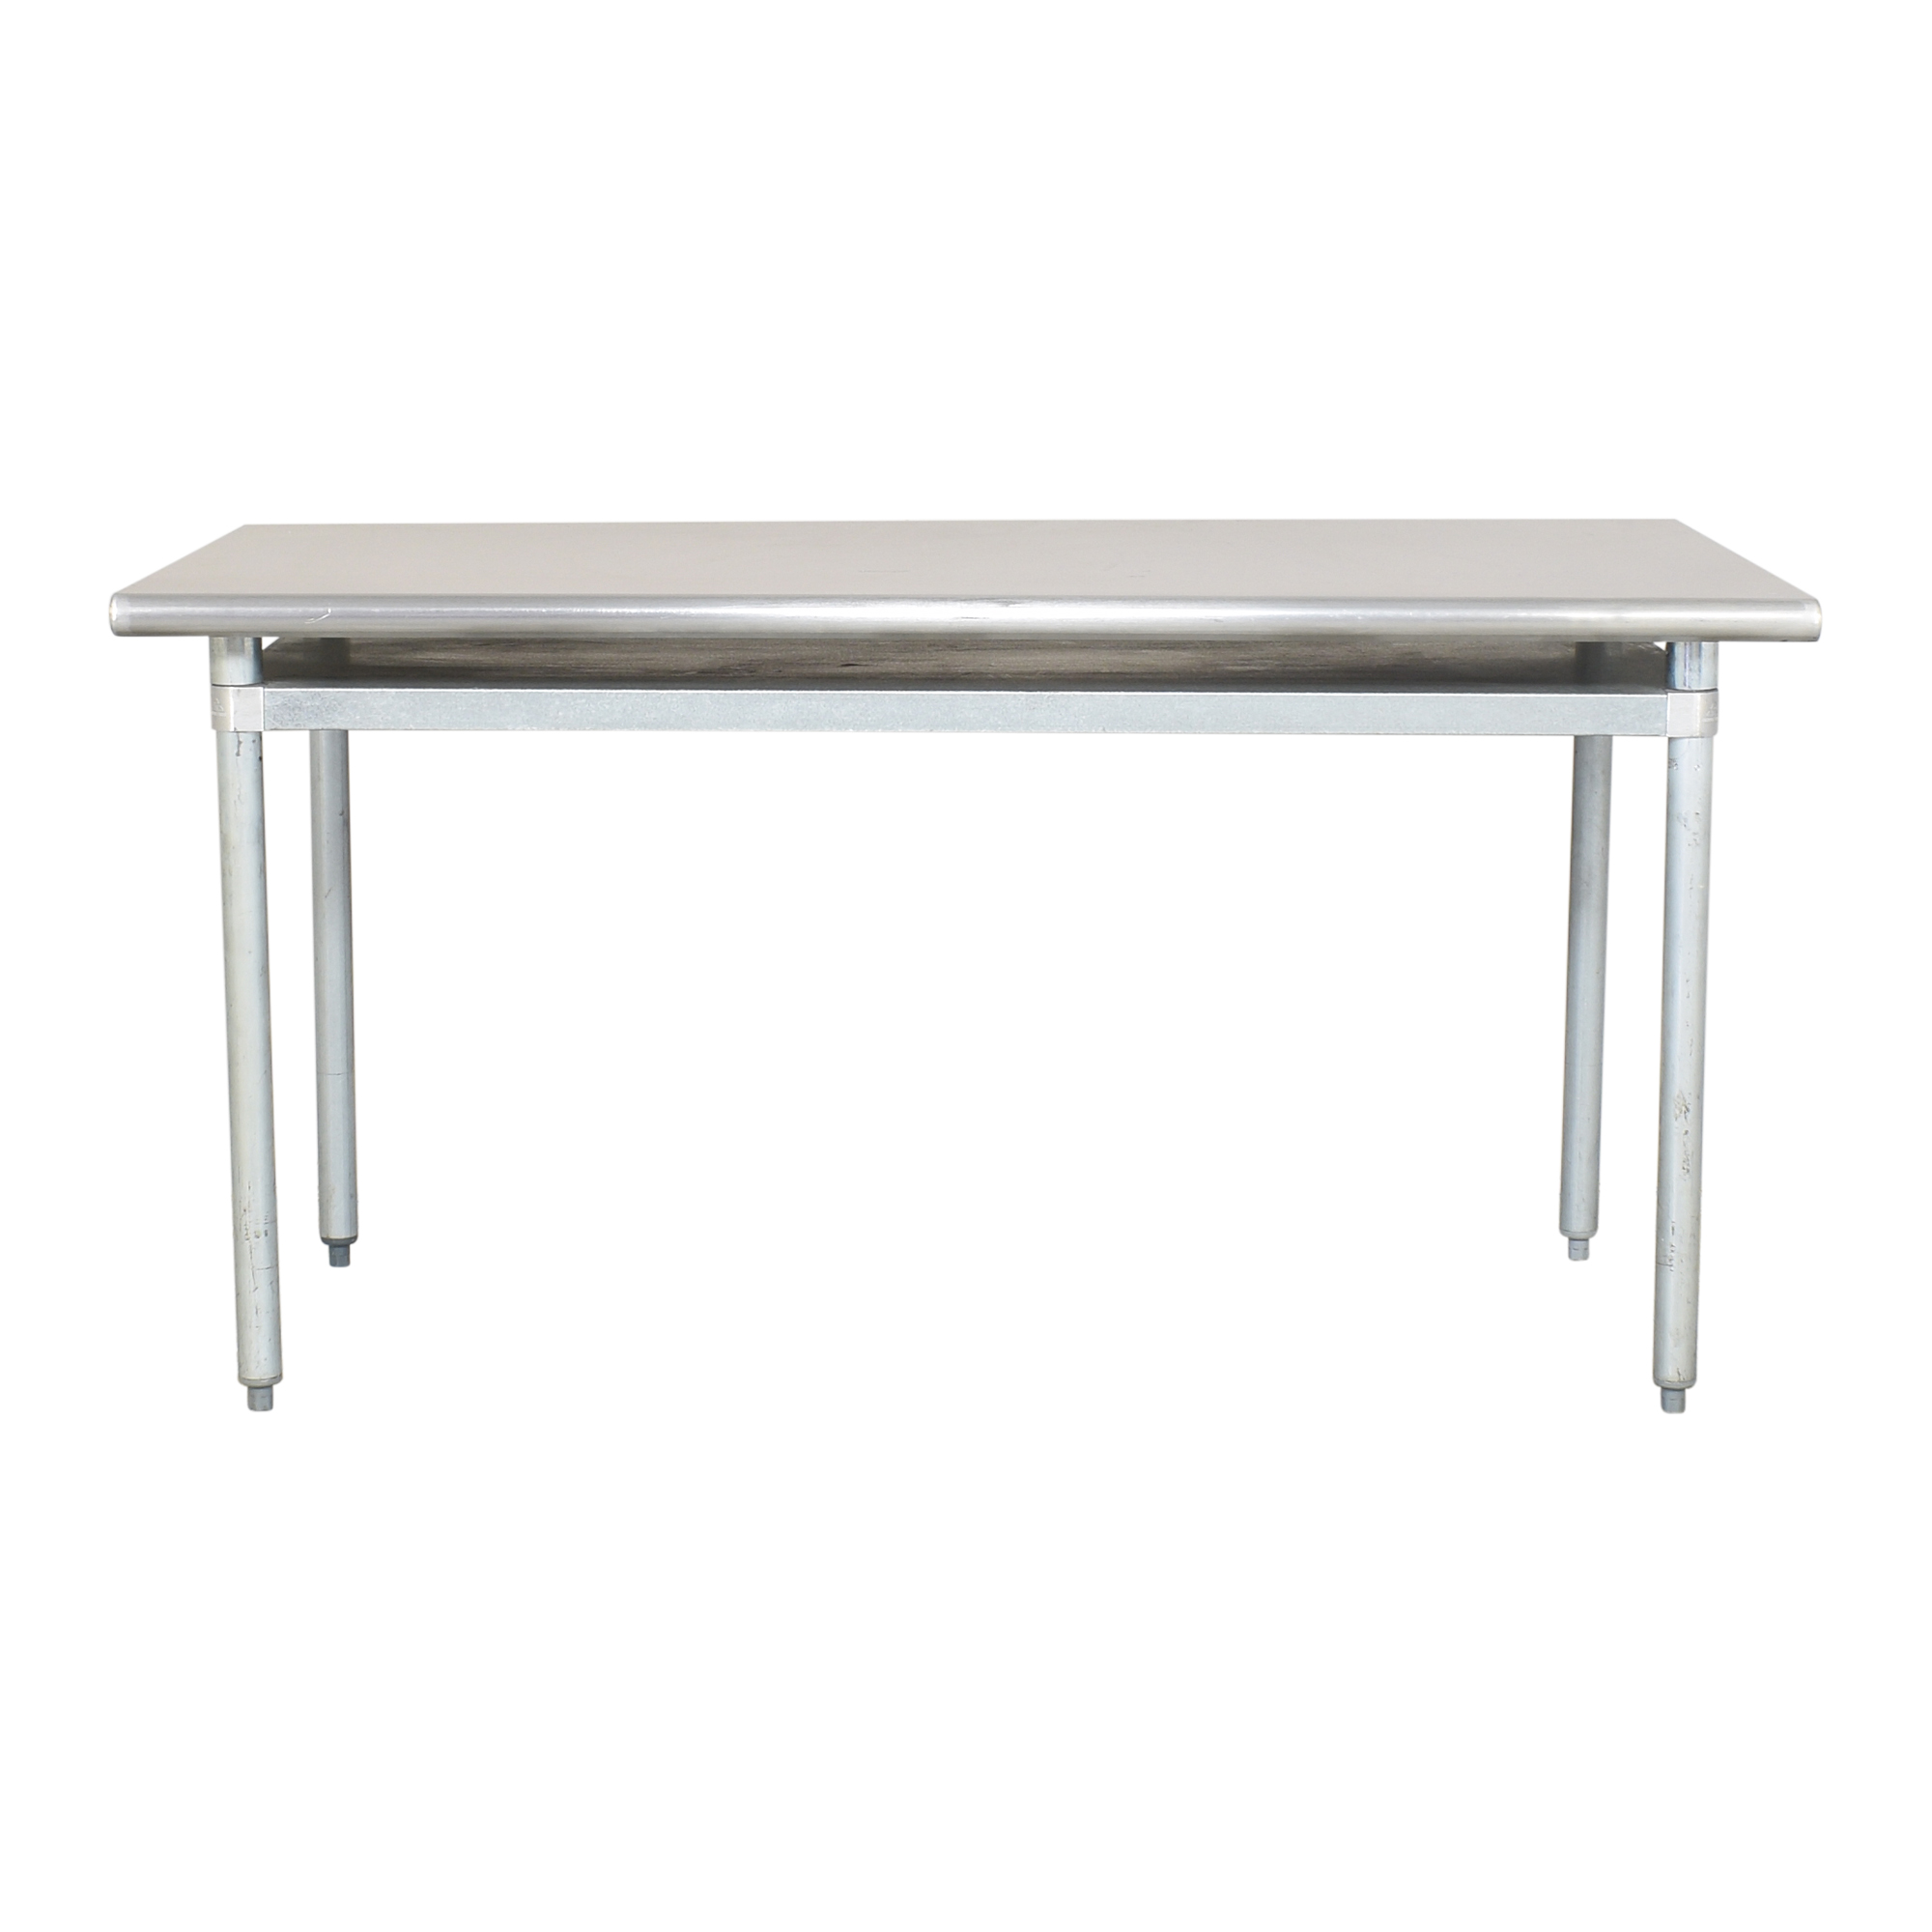 Advance Tabco Advance Tabco Industrial Table nyc